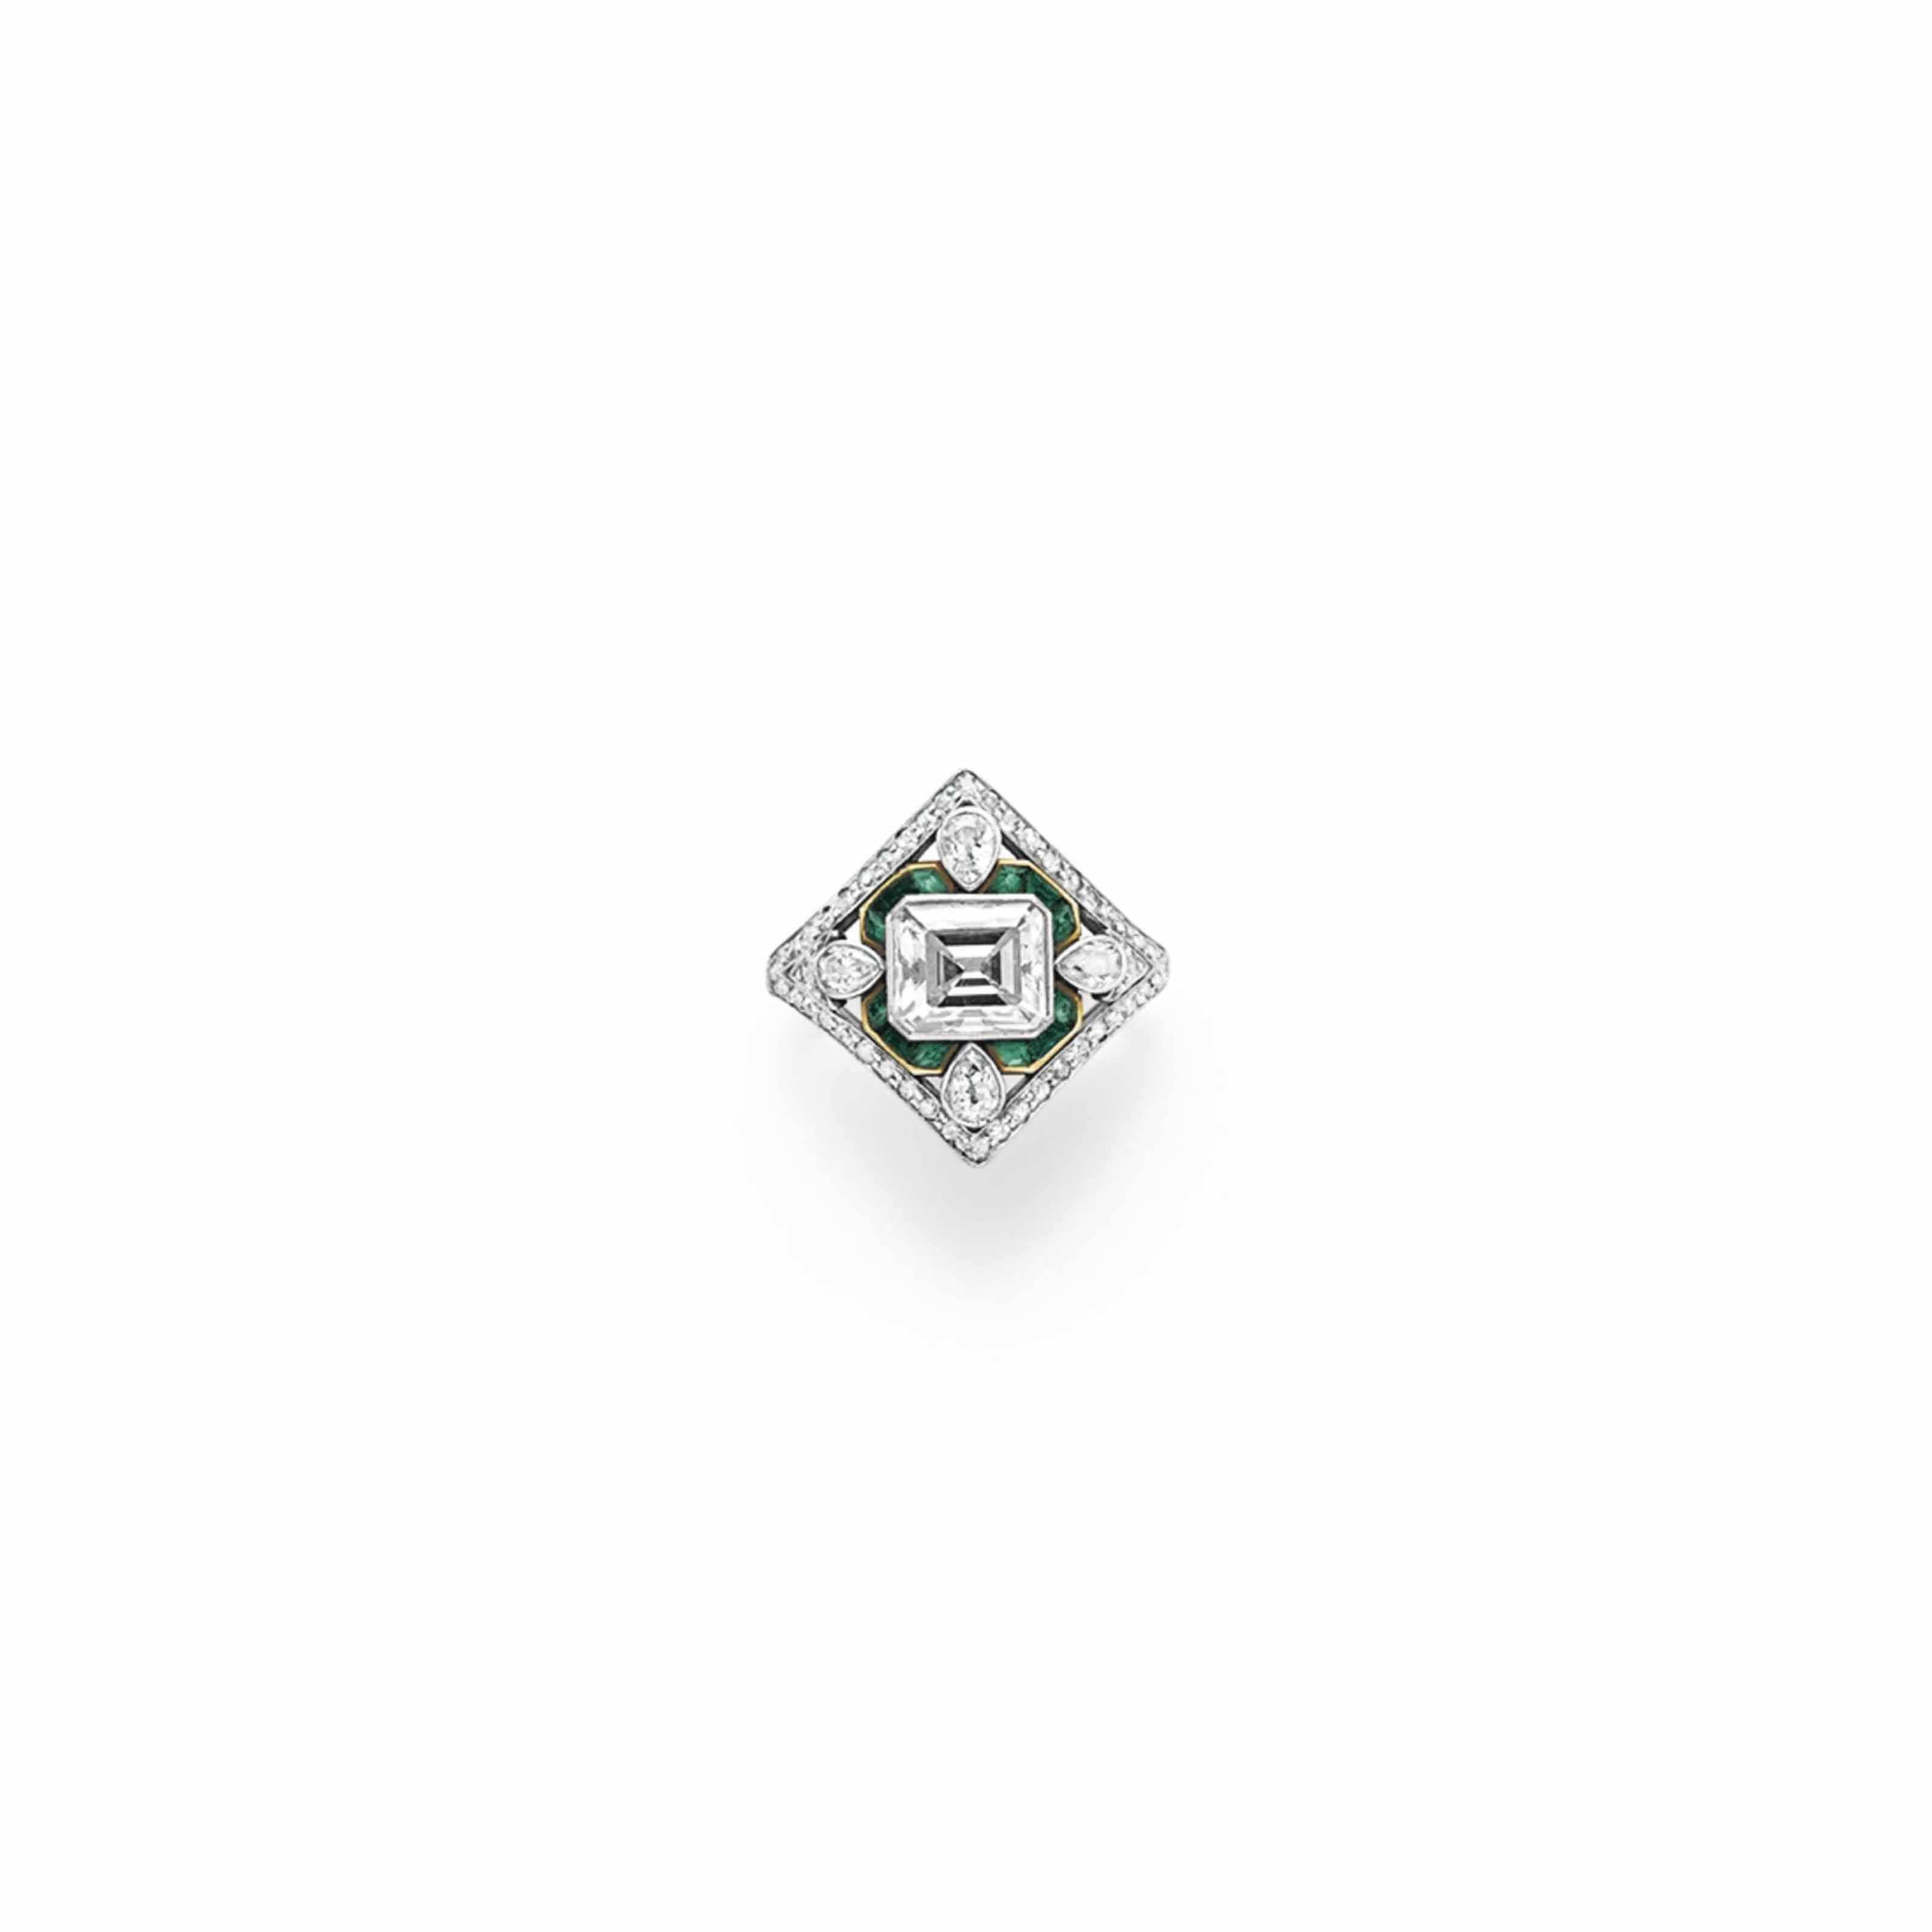 A BELLE ÉPOQUE DIAMOND AND EMERALD RING, BY MARCUS & CO.